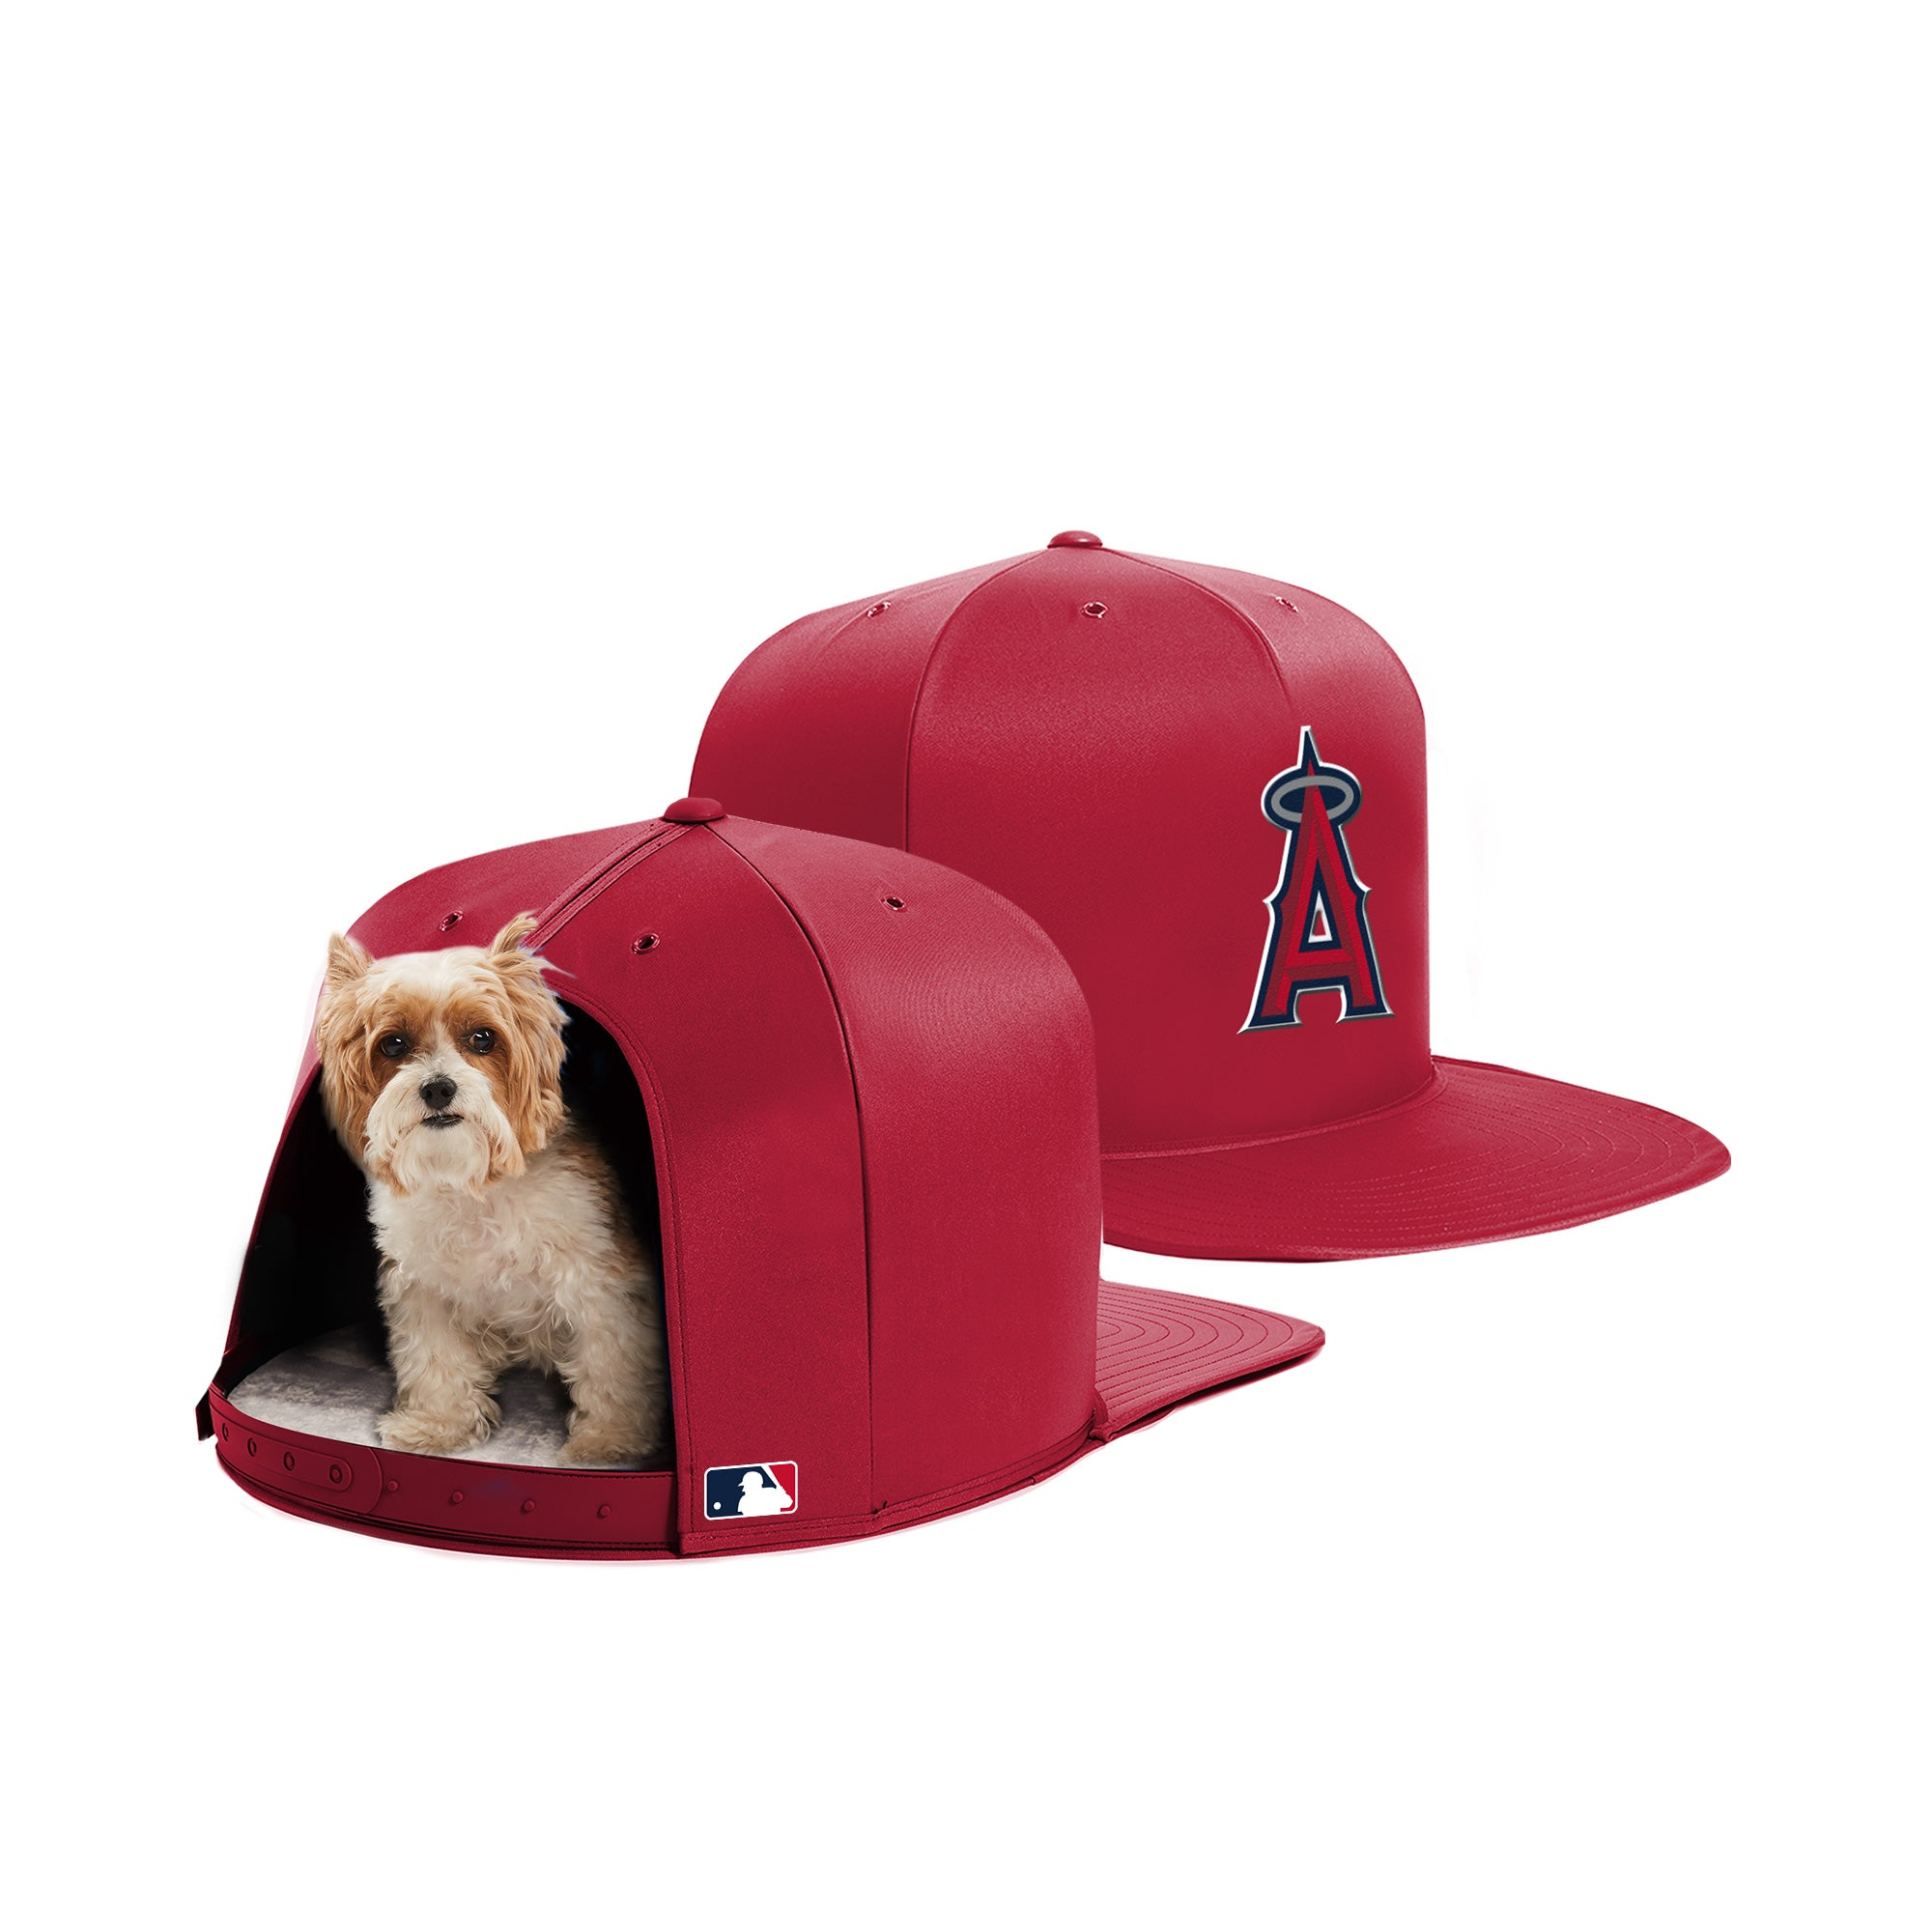 Nap Cap - Los Angeles Angels - Pet Bed